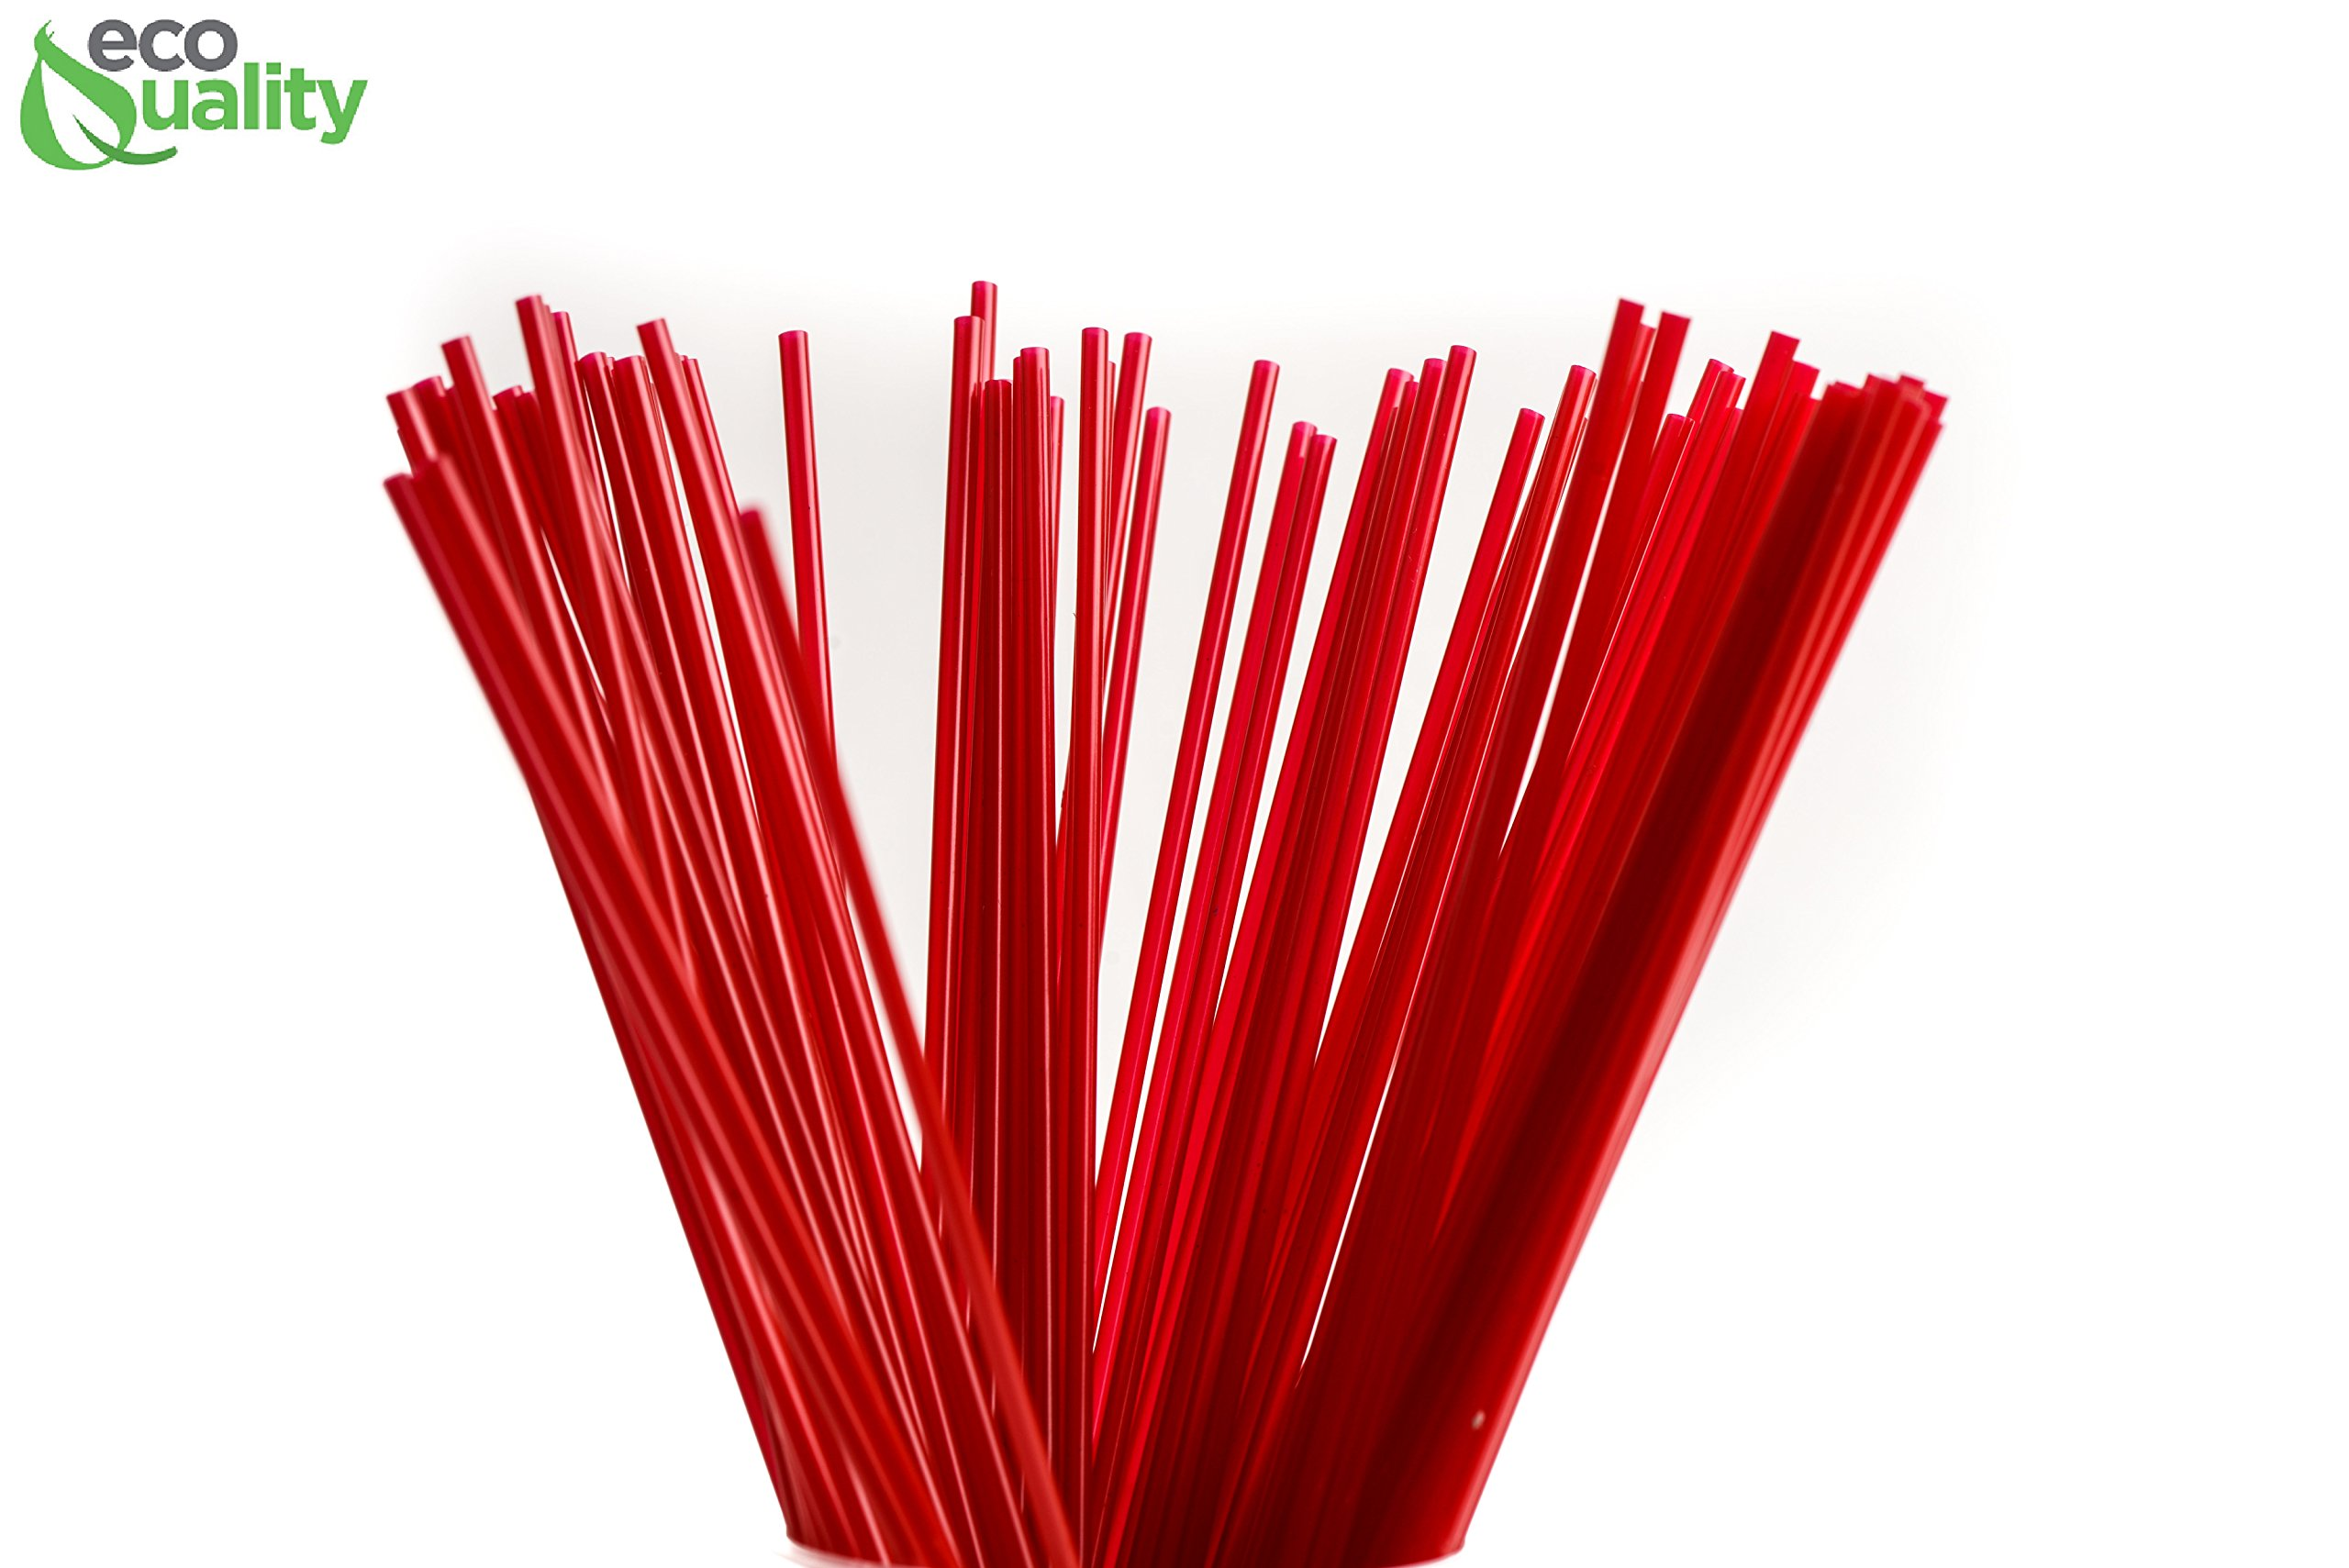 4000 Count Plastic Stirrer 8inch, Sip Stirrer, Sip Straw, For Coffee, Cocktail, Latte and Tea - 8 Inches, 1000/Box, Red